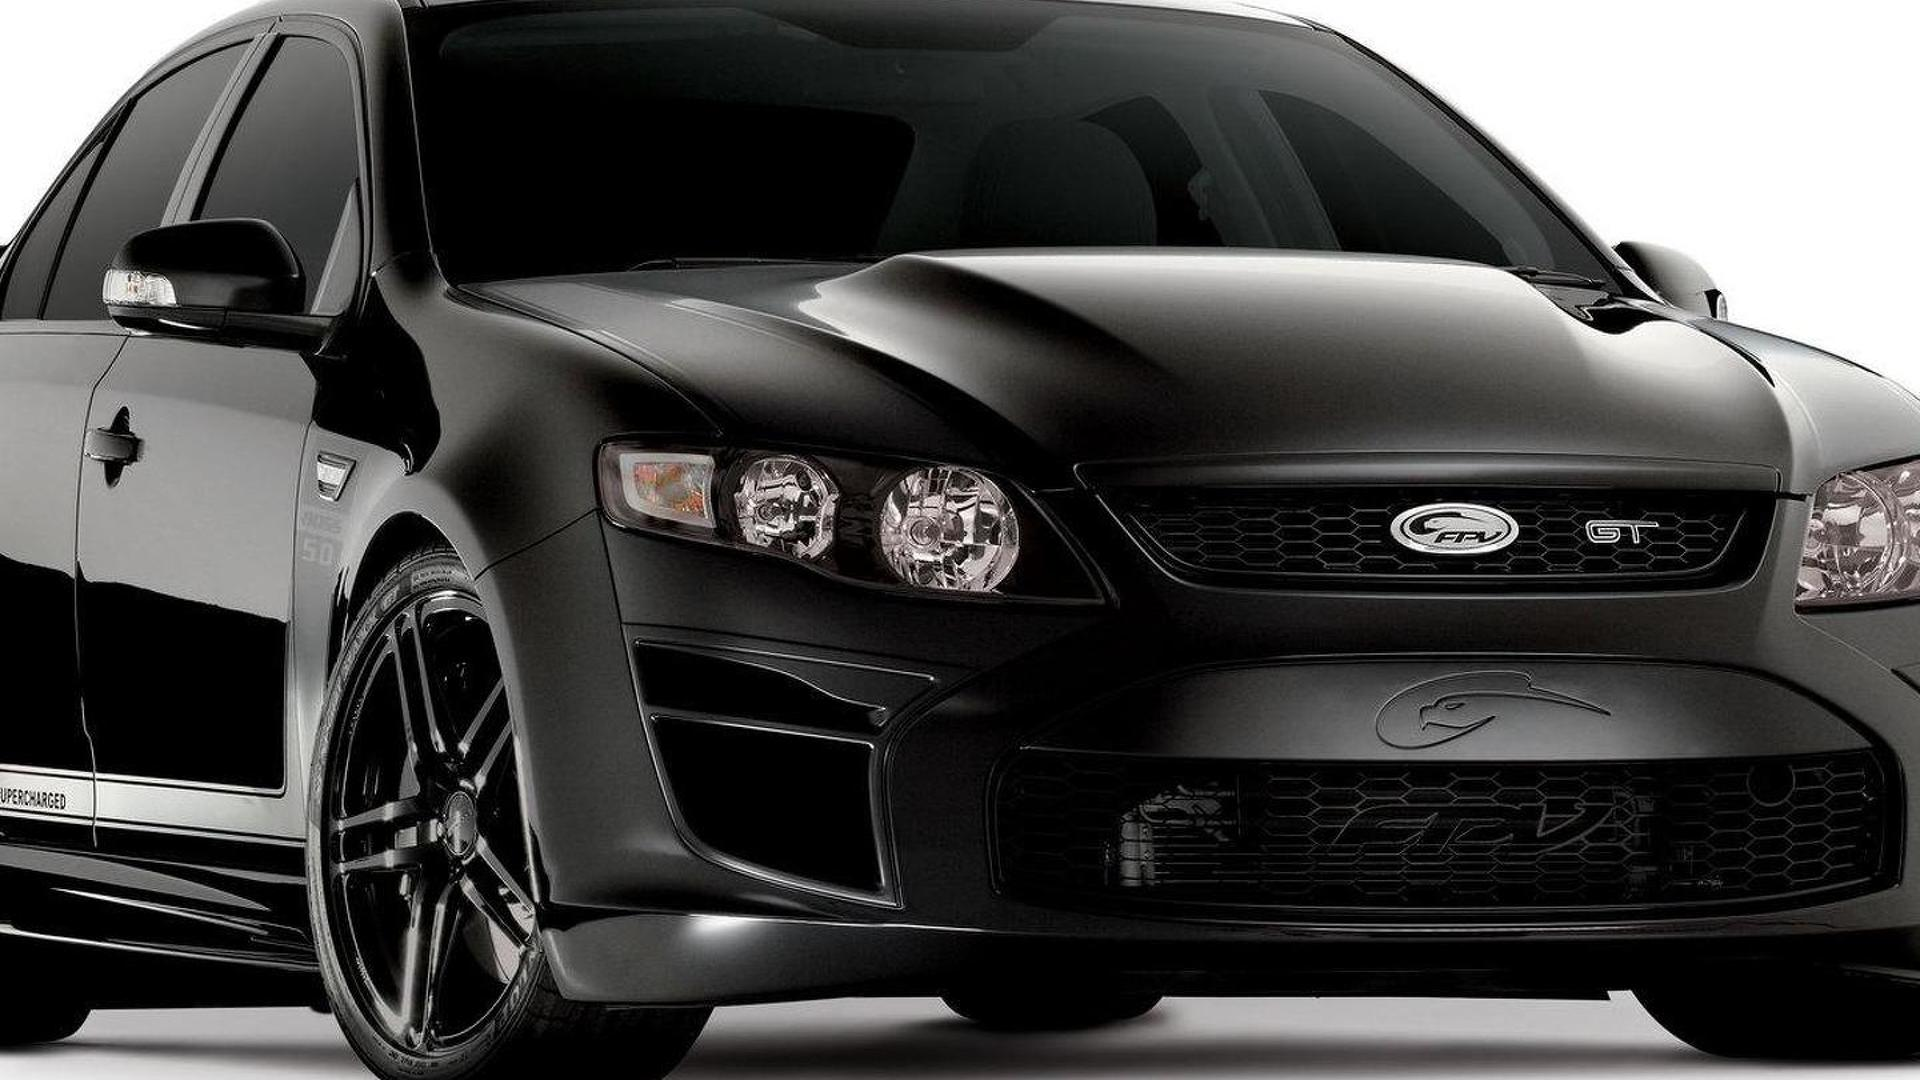 2020 Ford Falcon Gt Pricing